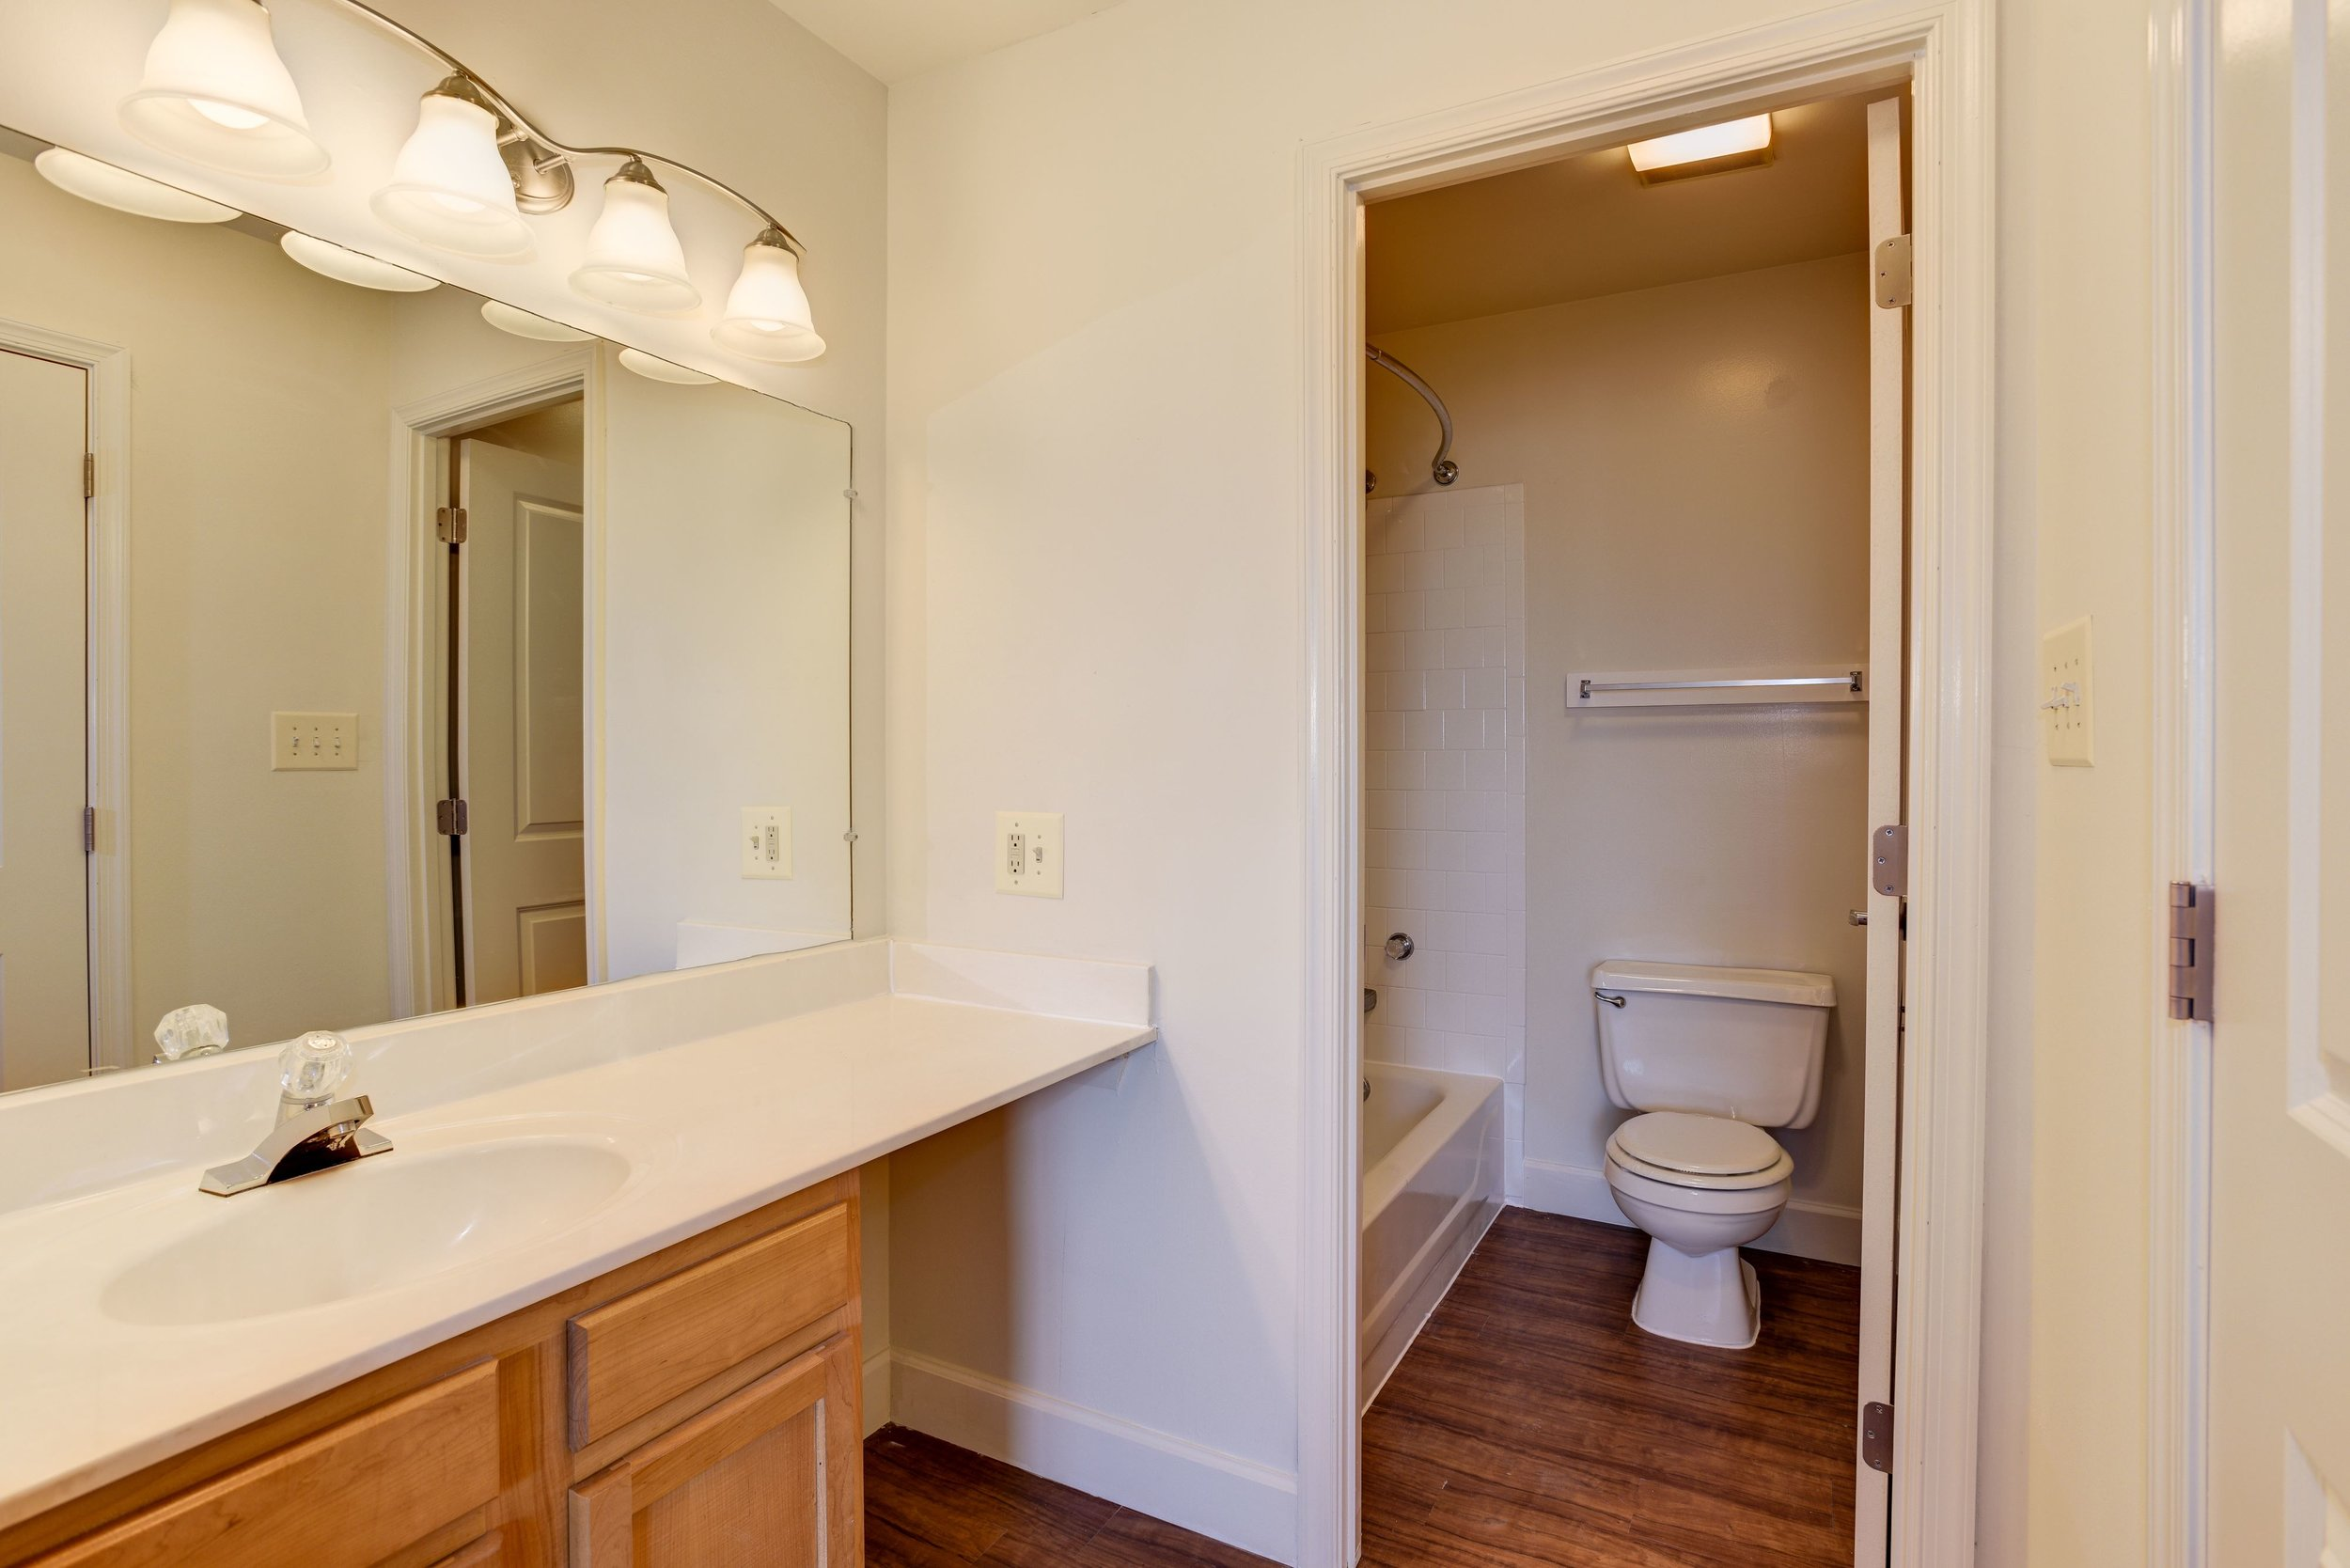 Renovated Dressing Area & Master Bathroom - Fox Run Apartments in Edgewood, MD